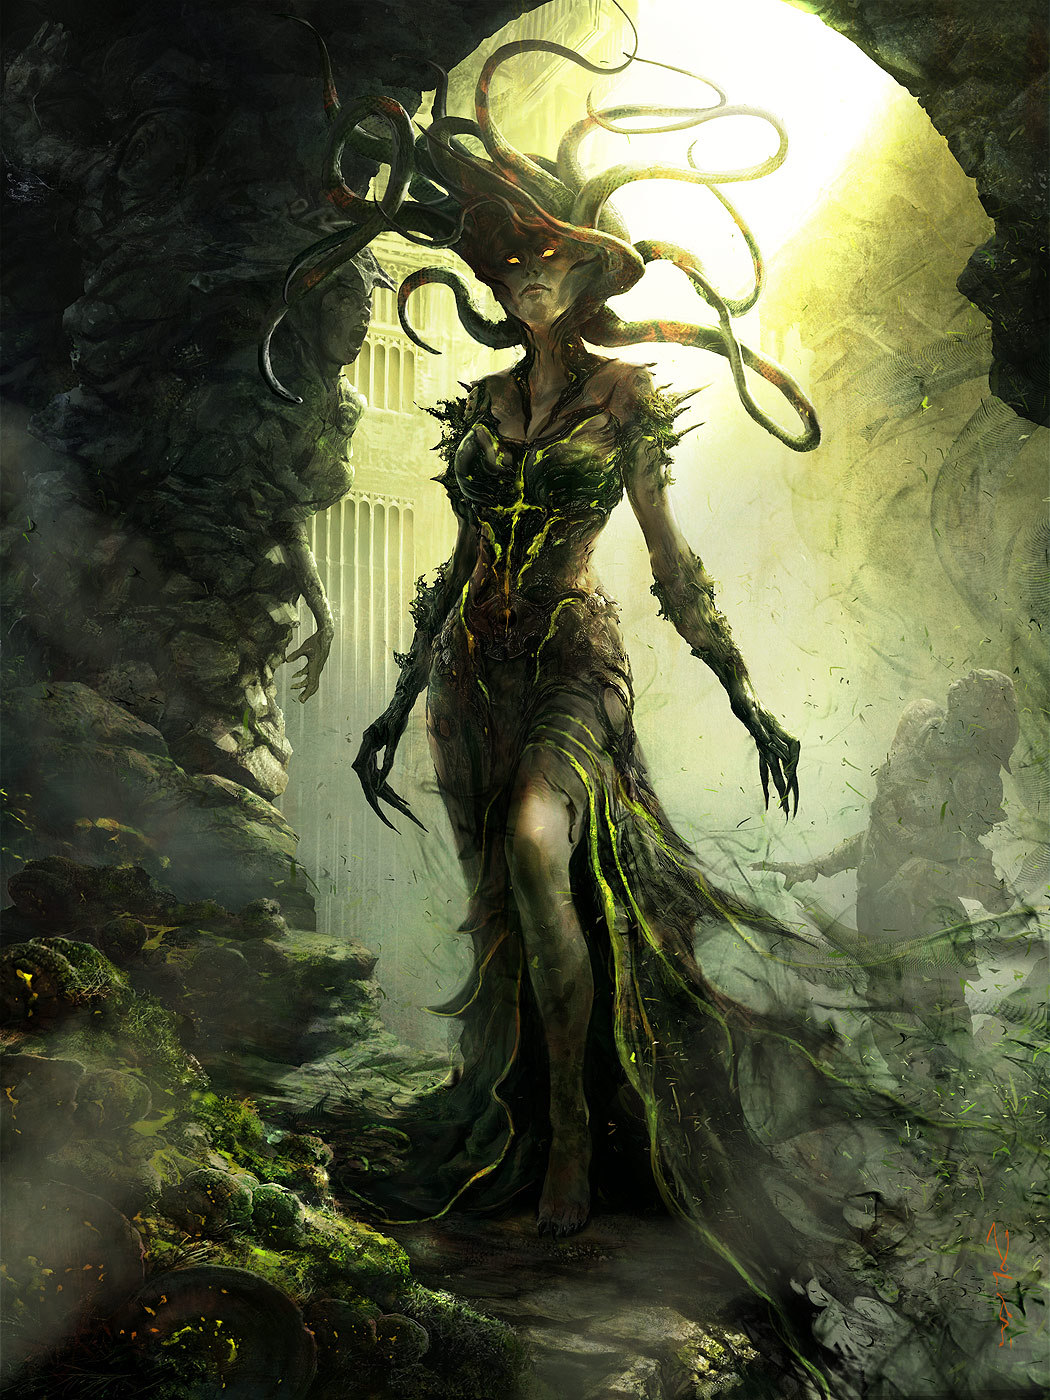 Aleksi Briclot Vraska illustration for Return to Ravnica Magic The Gathering